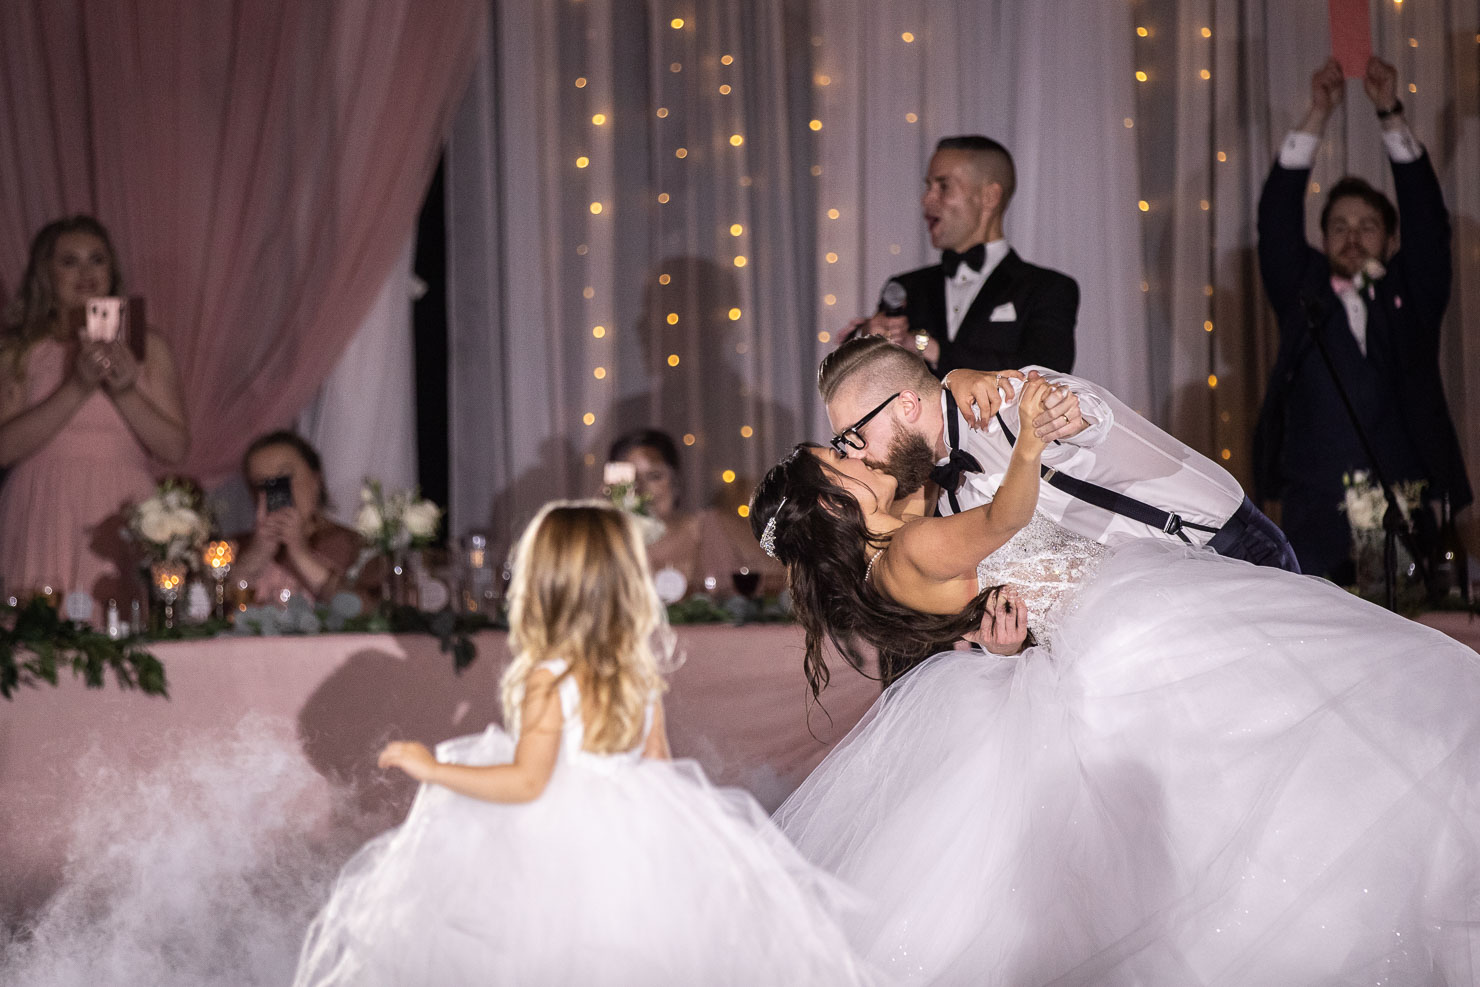 First Dance, wedding, Joey Niceforo, bride and groom, wedding, sudbury wedding, akaiserphoto, wedding photographer